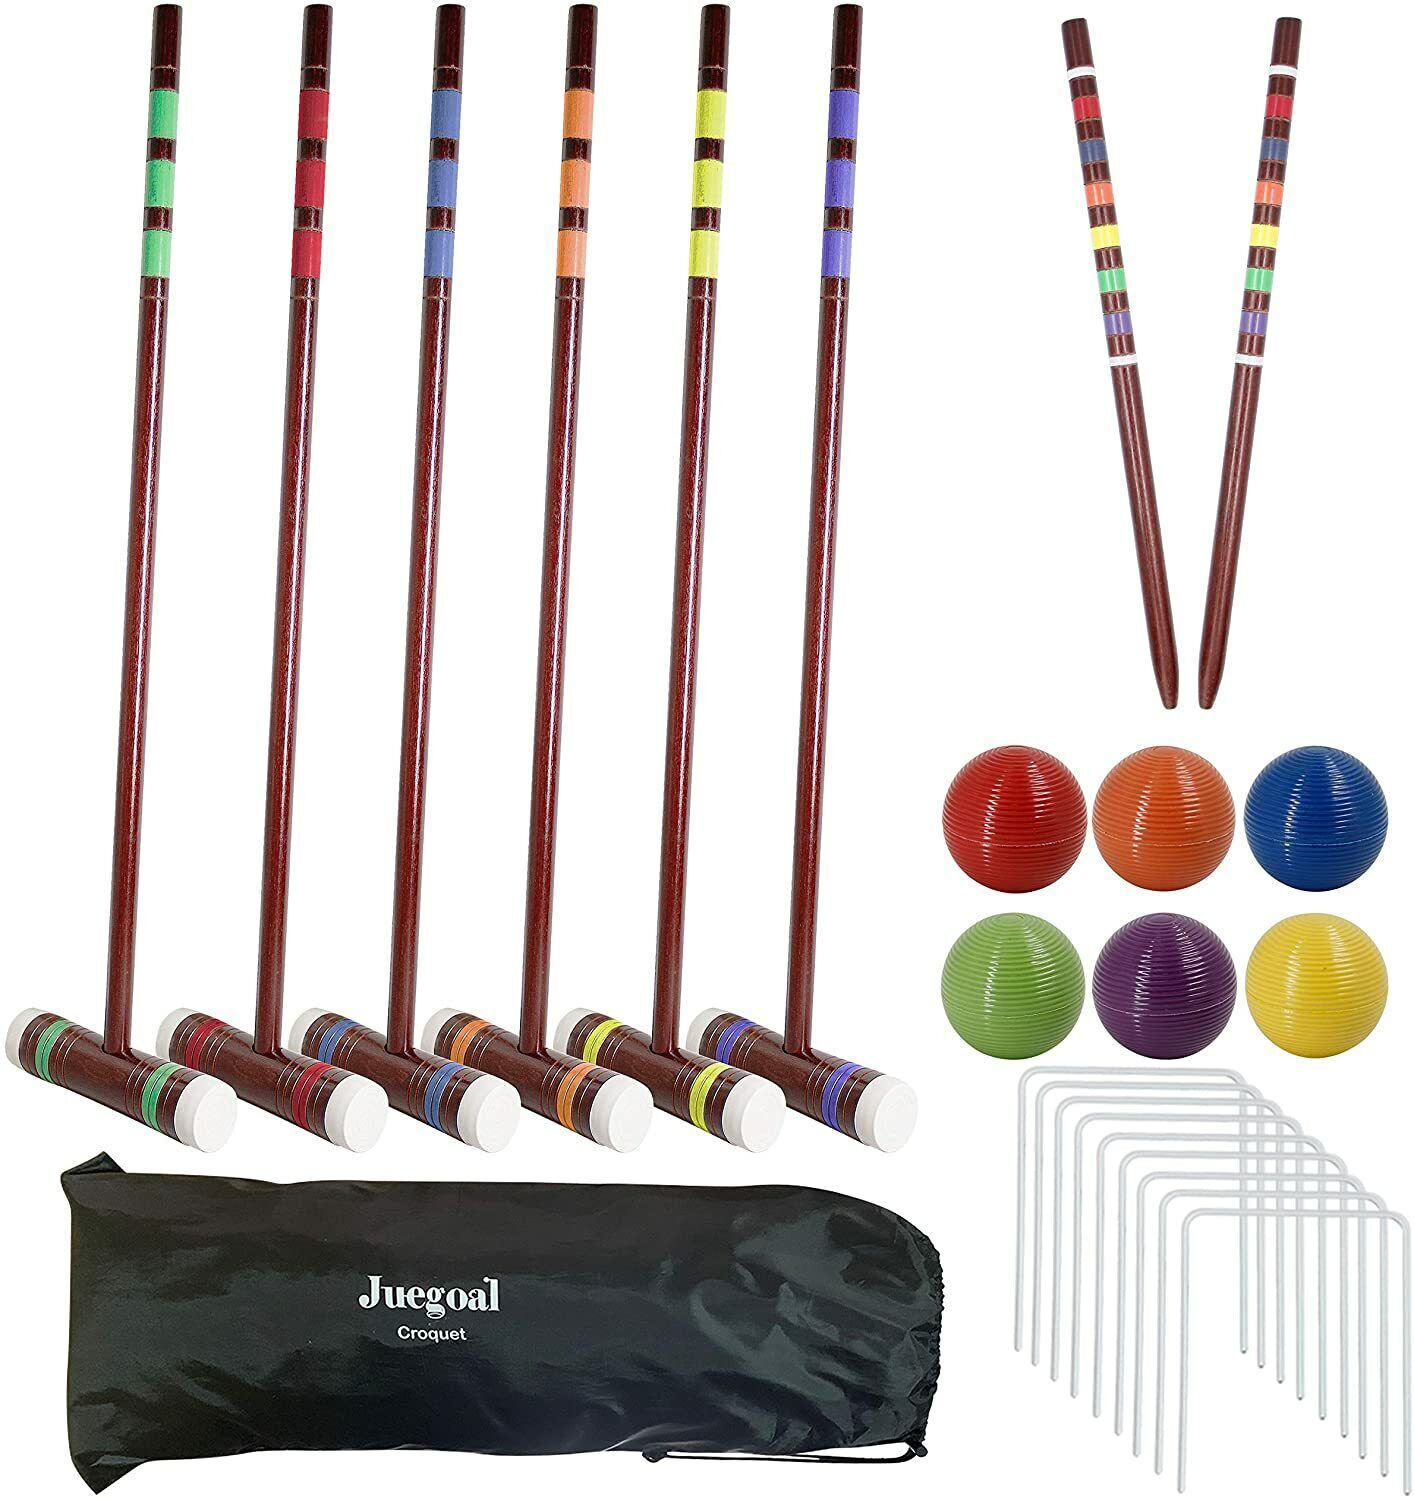 Juegoal Six Player Deluxe Croquet Set Wooden Mallets Colored